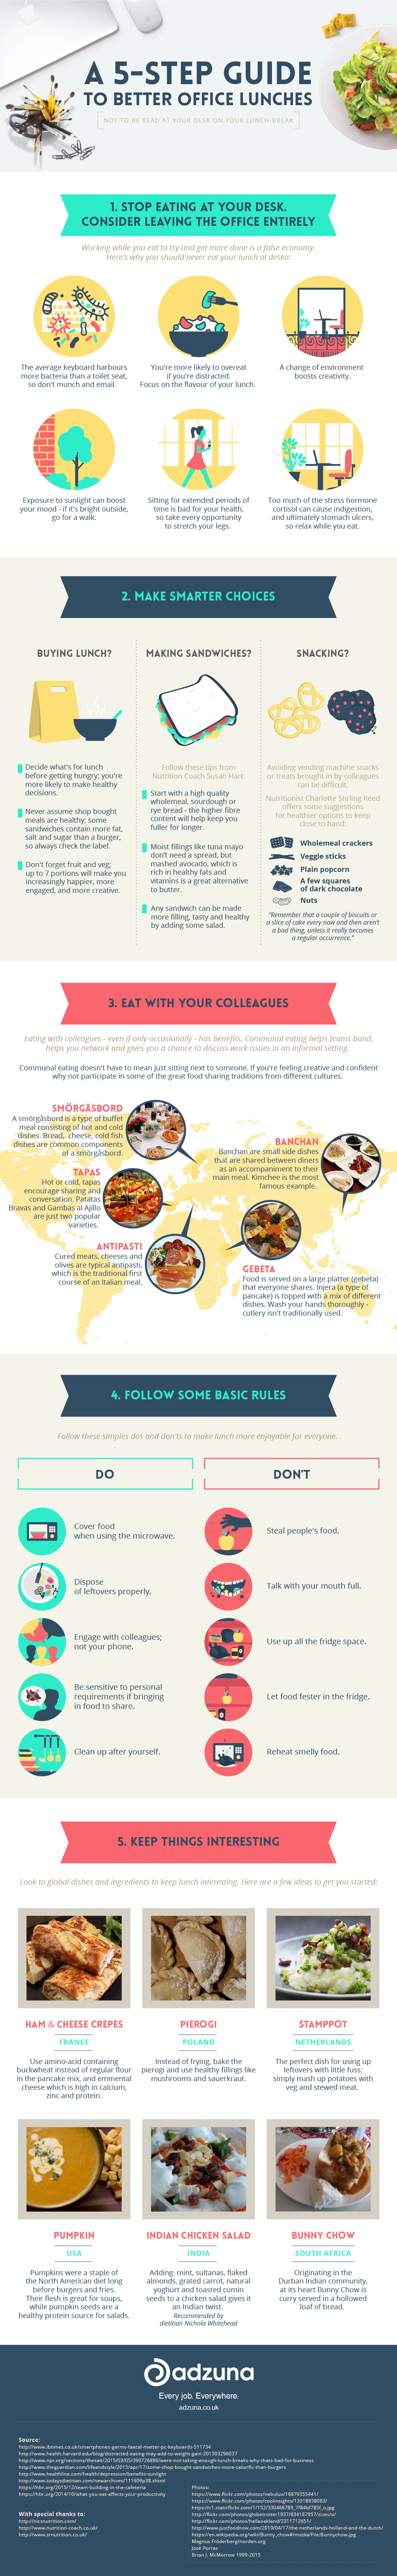 Healthy Office Lunches in Five Easy Steps - Infographic